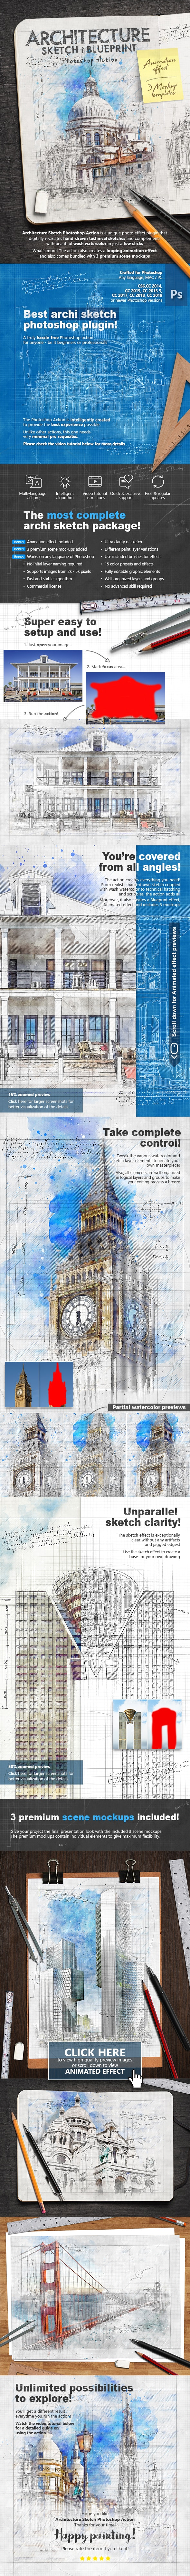 Animated Architecture Sketch and Blueprint Photoshop Action - Photo Effects Actions